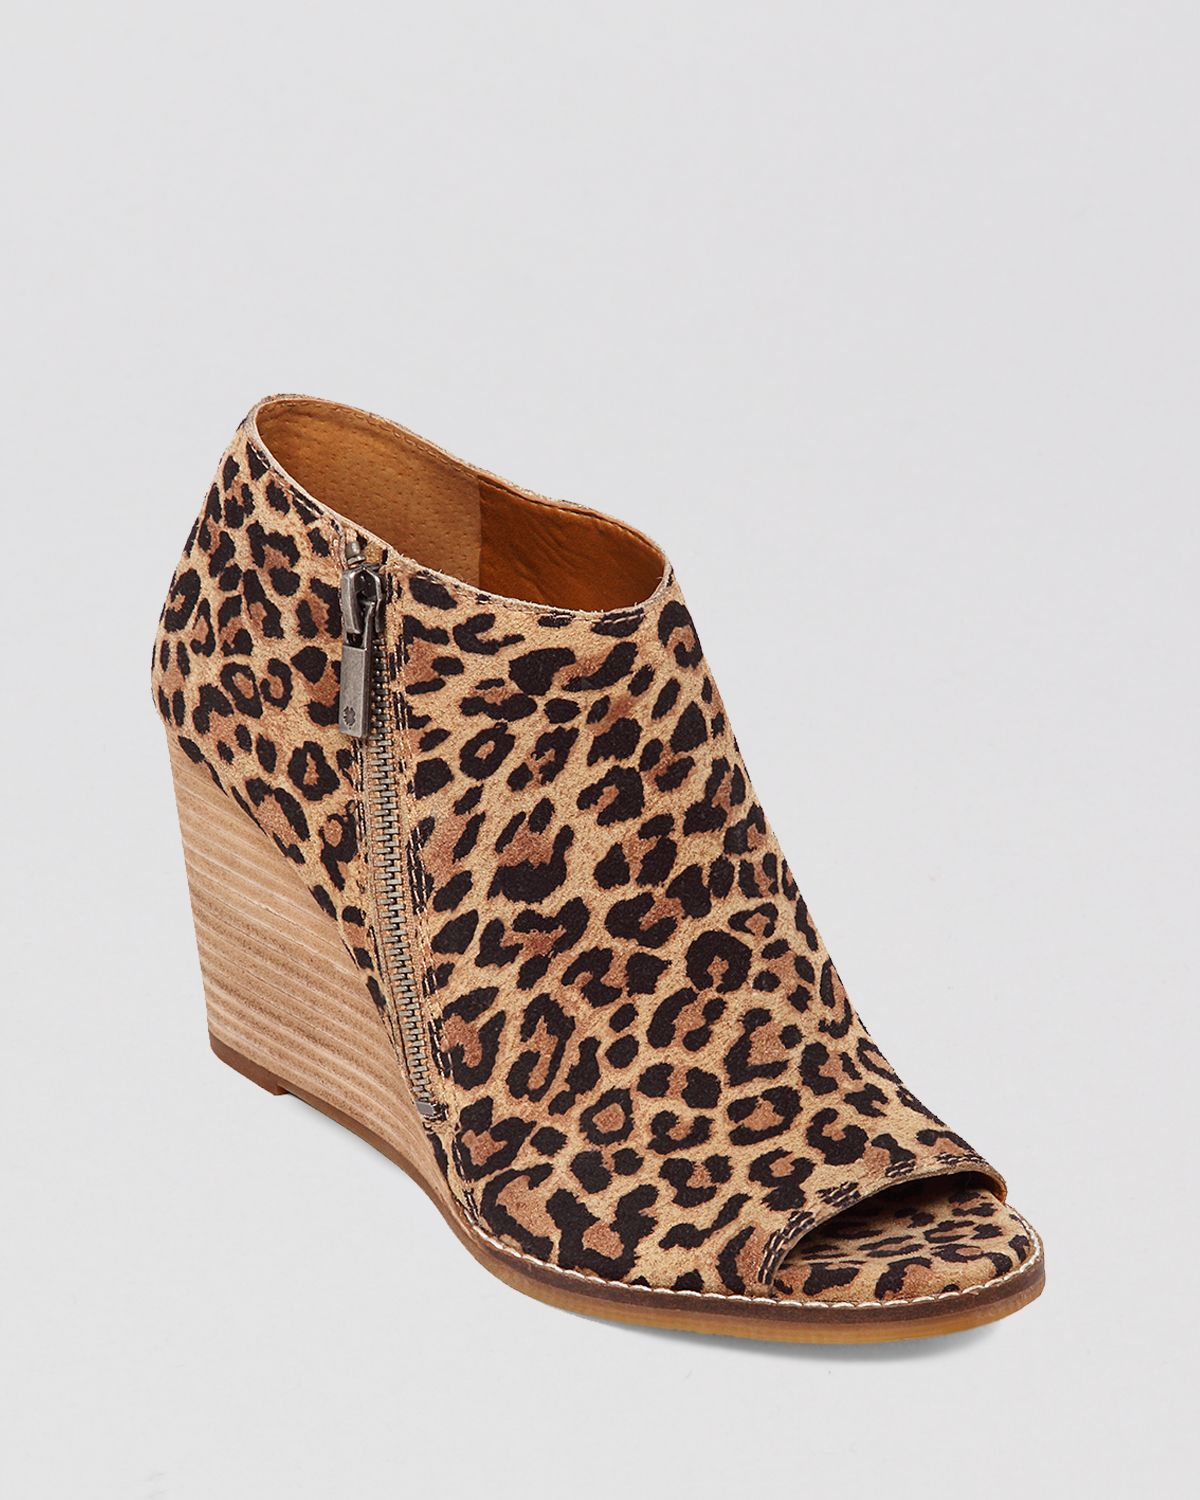 Lucky Brand Shoes Wedge Sandals